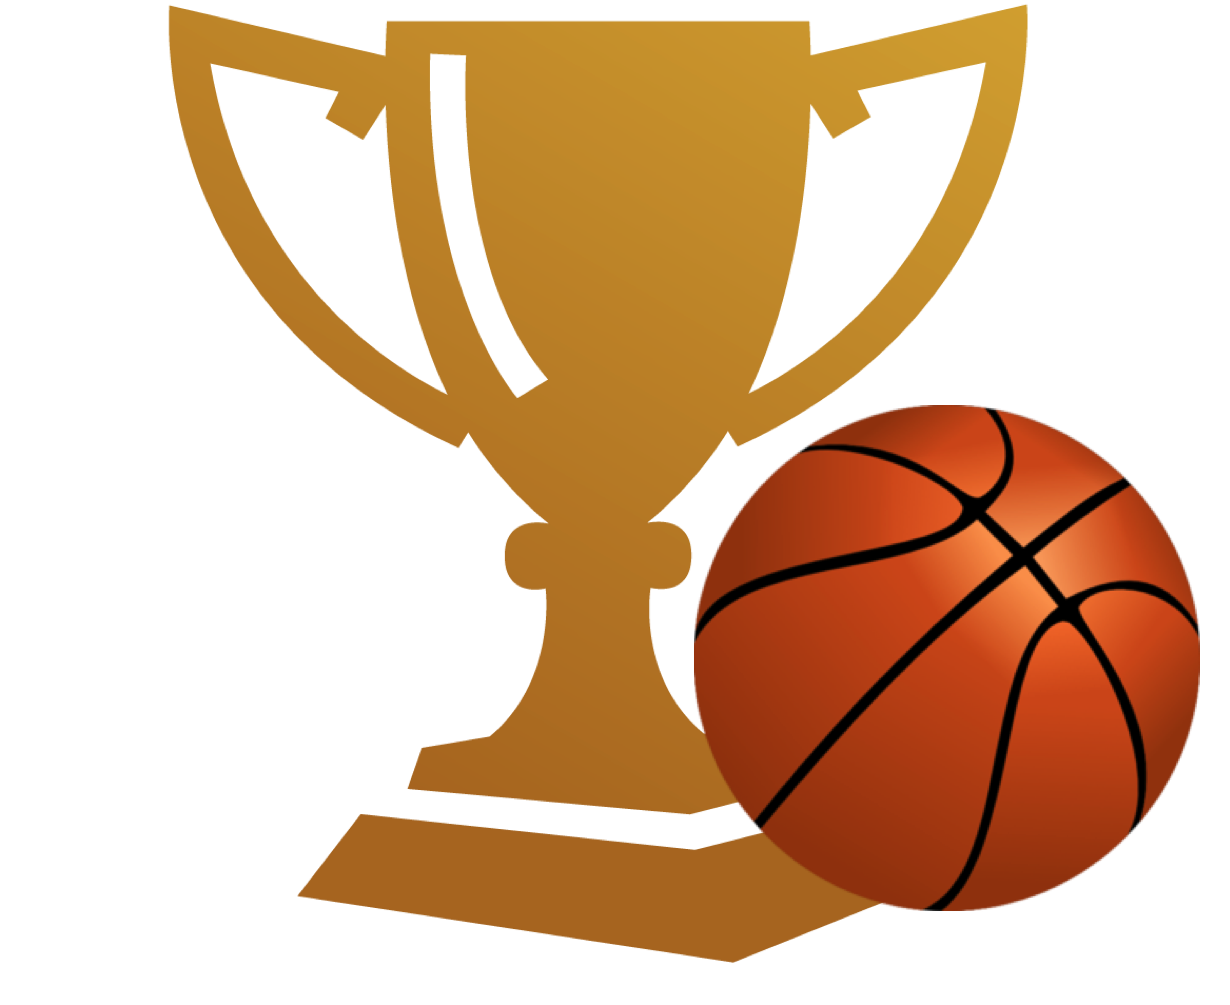 Basketball trophy free download. Game clipart tournament